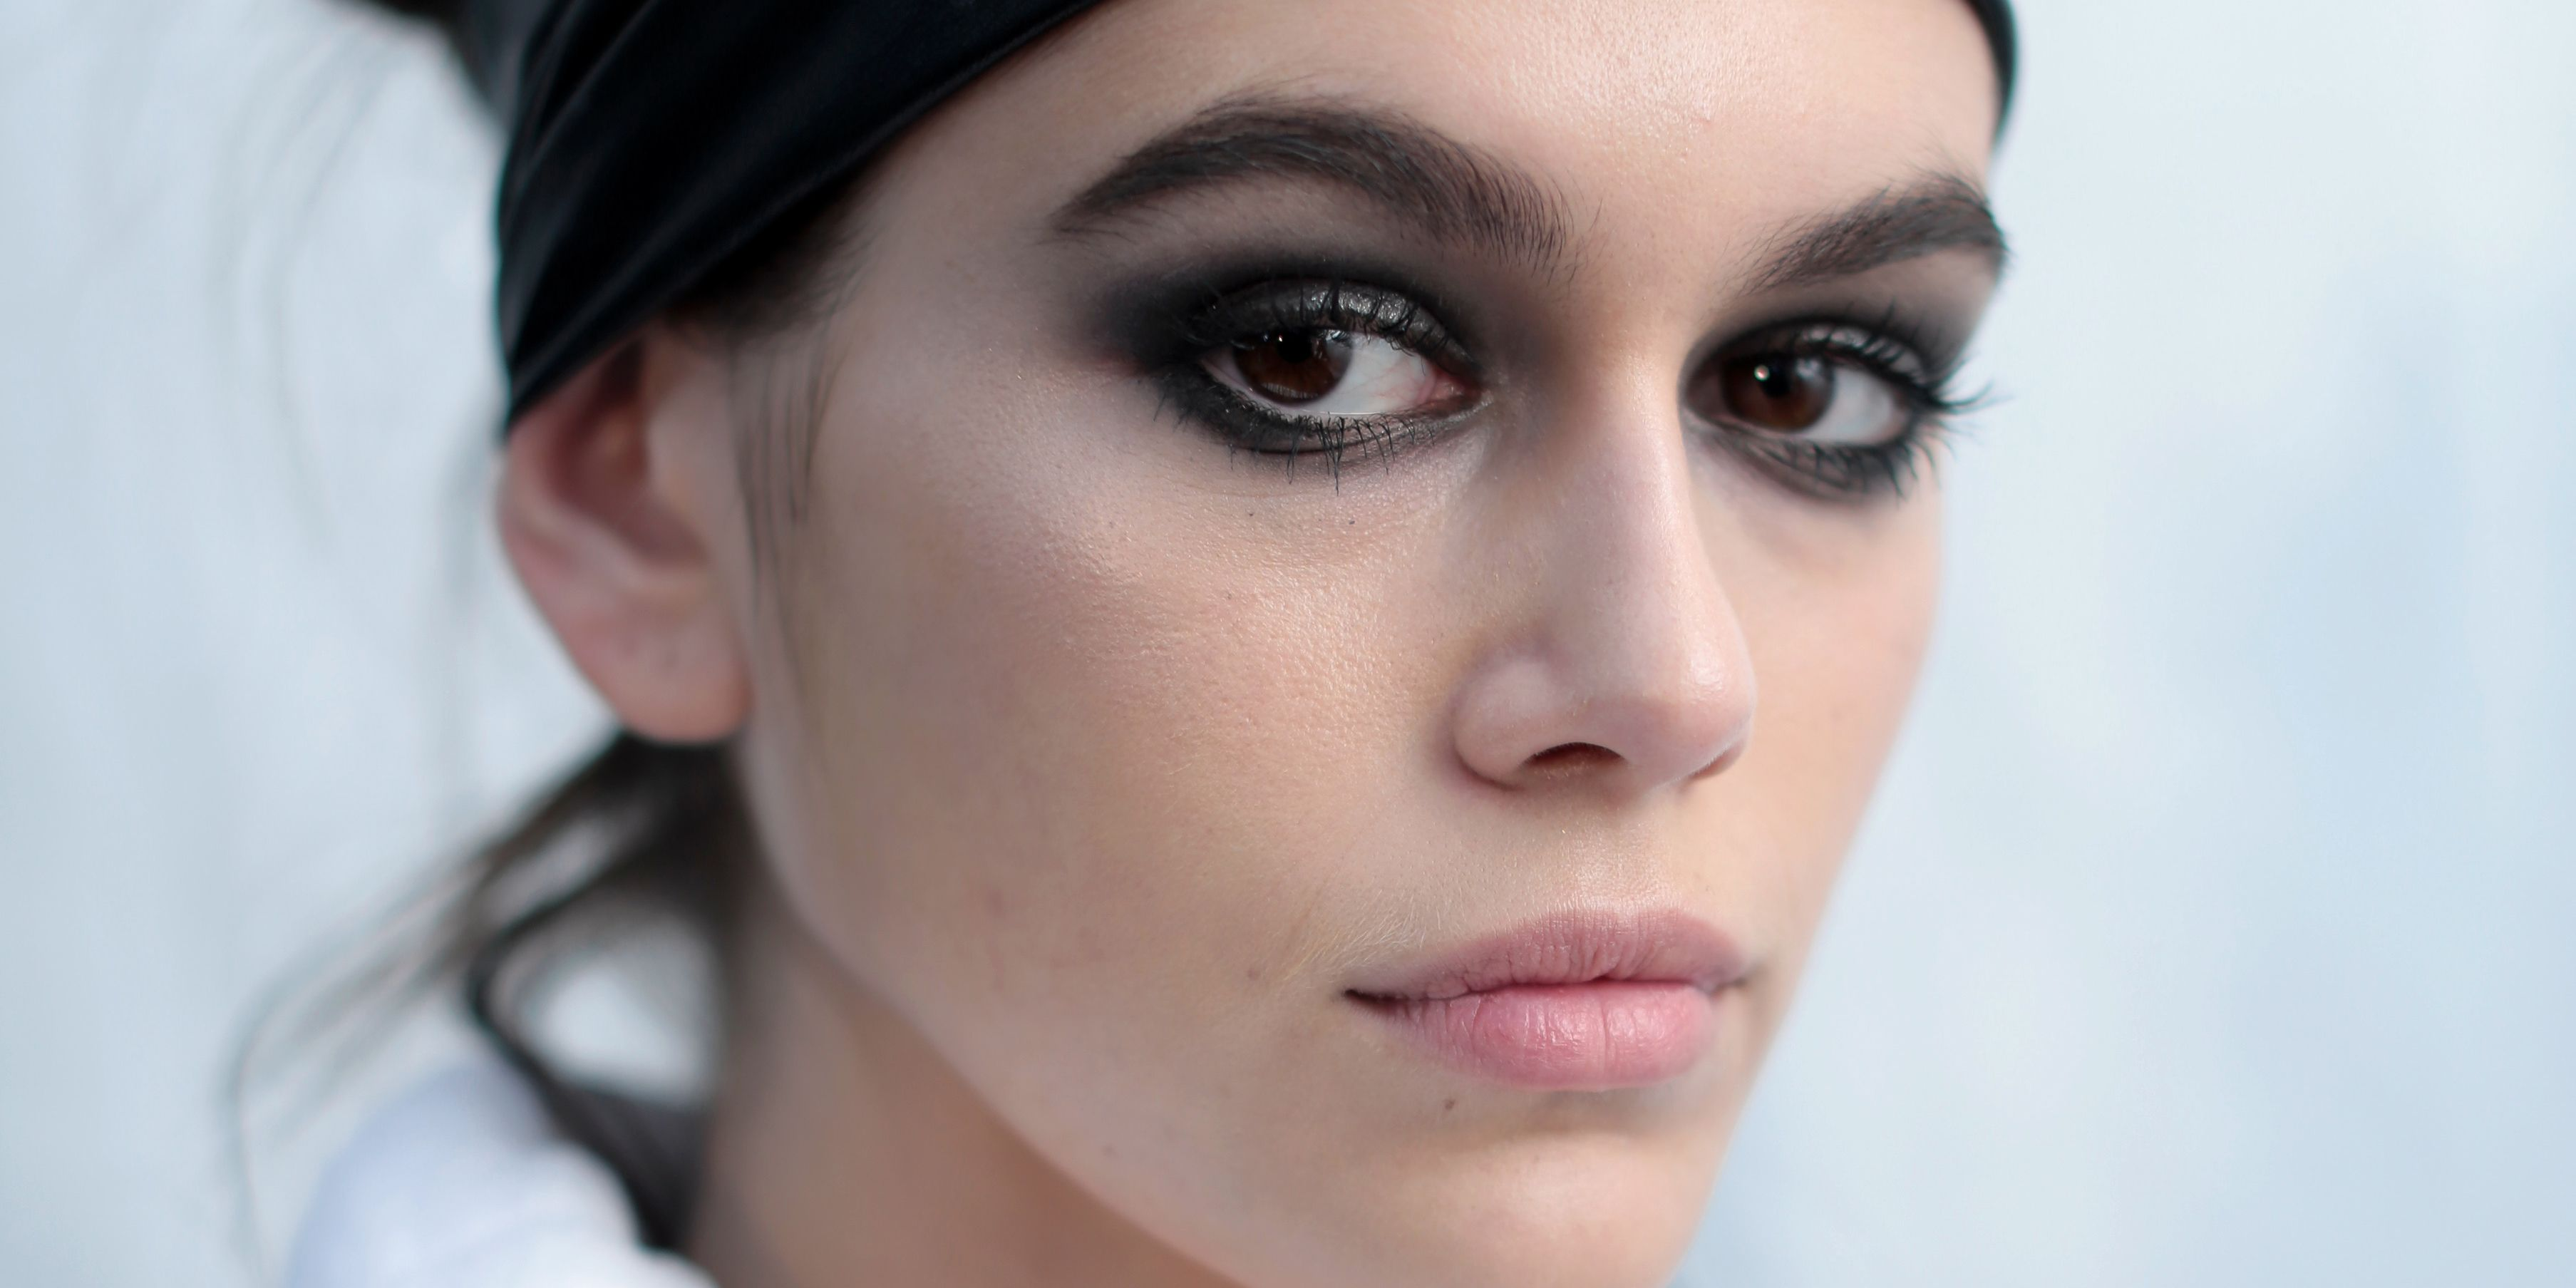 Aw18 Has Made The Smokey Eye Make Up Trend A Thing Again